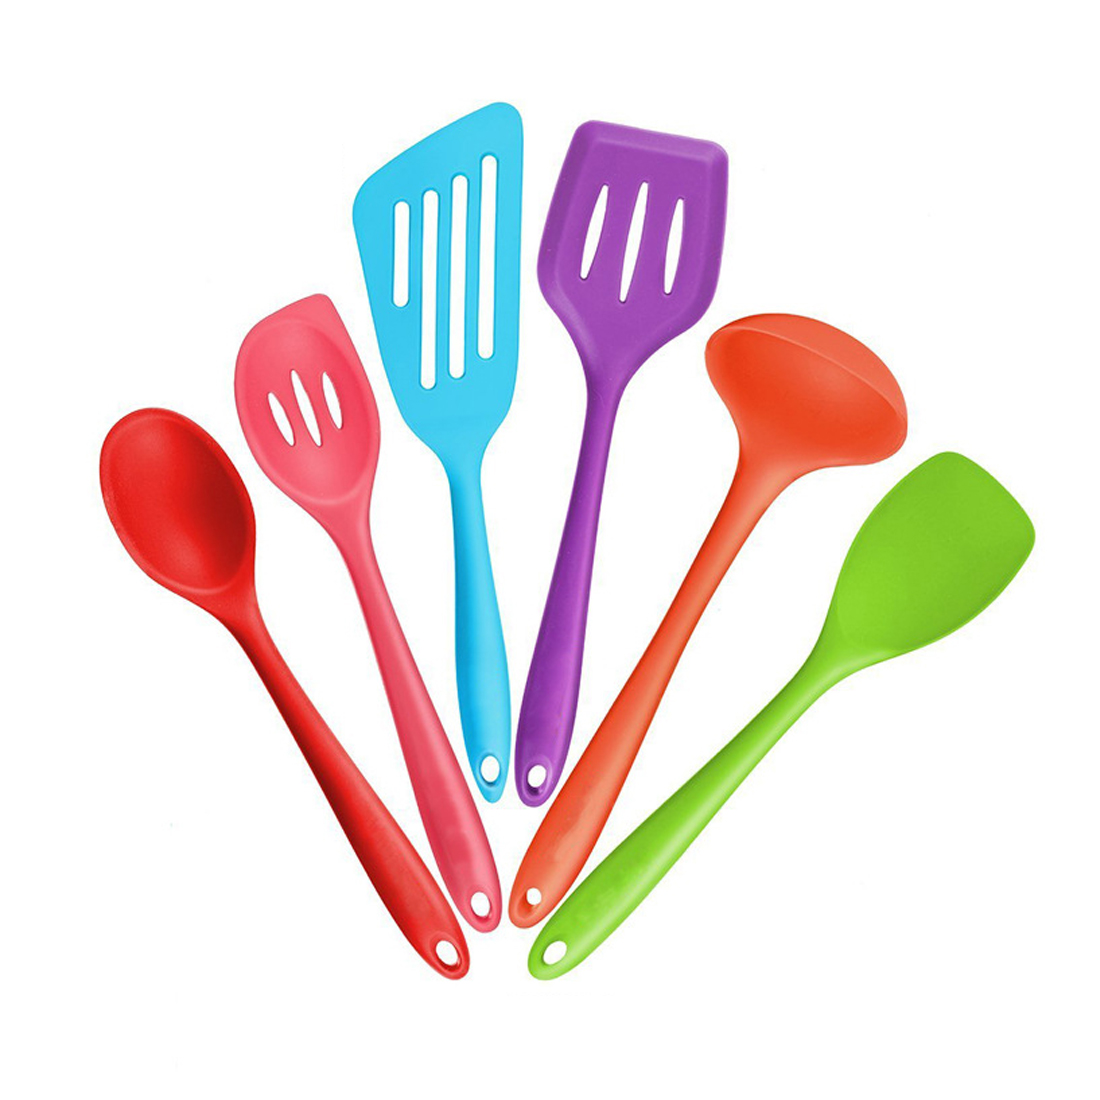 6 Pcs/Set Heat Resitant Non-Stick Silicone Kitchen Utensils Set Mixed Color Cooking Bake Tool DIY Home Cooking Tools Sets